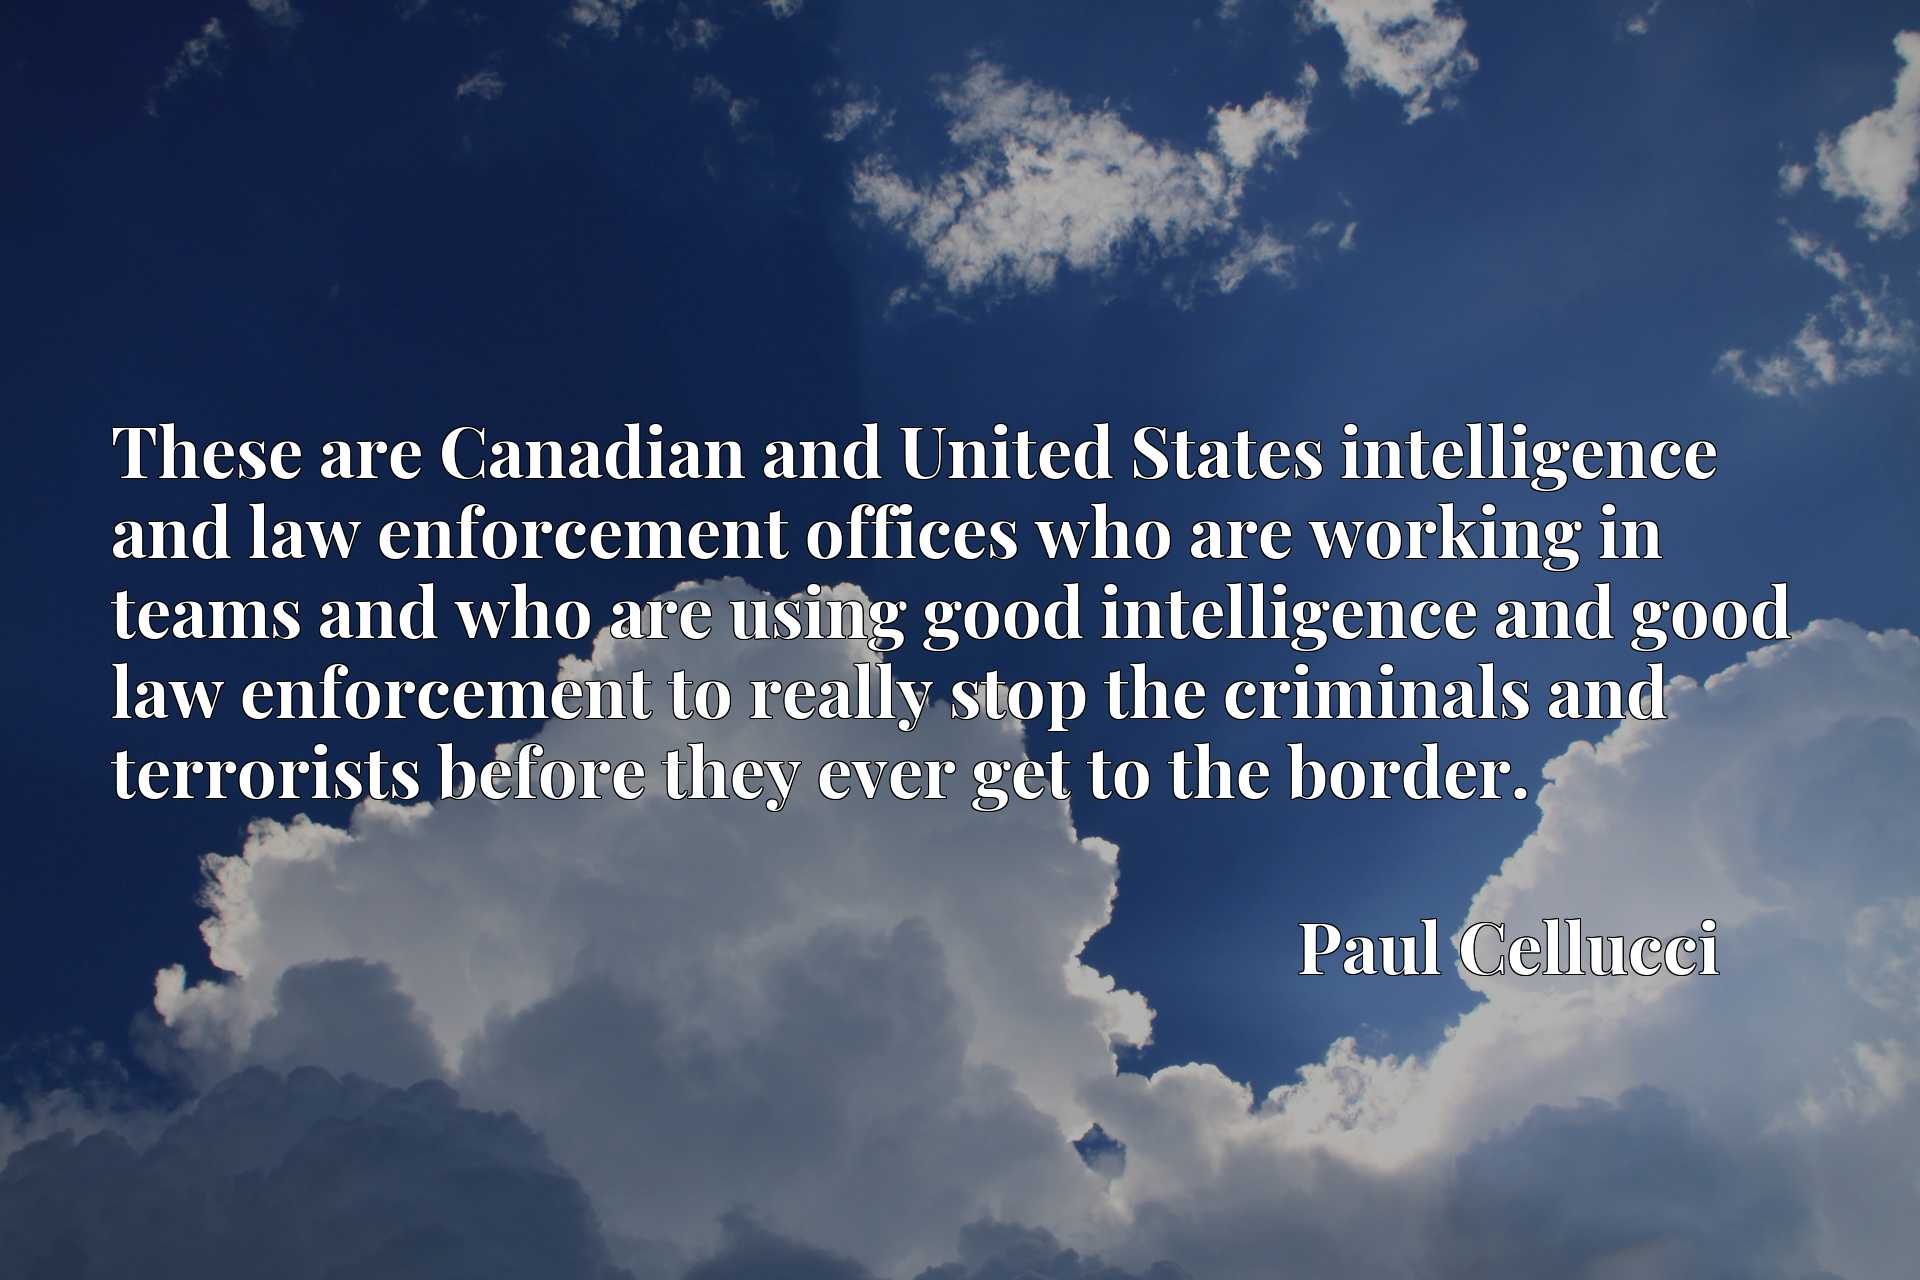 These are Canadian and United States intelligence and law enforcement offices who are working in teams and who are using good intelligence and good law enforcement to really stop the criminals and terrorists before they ever get to the border.